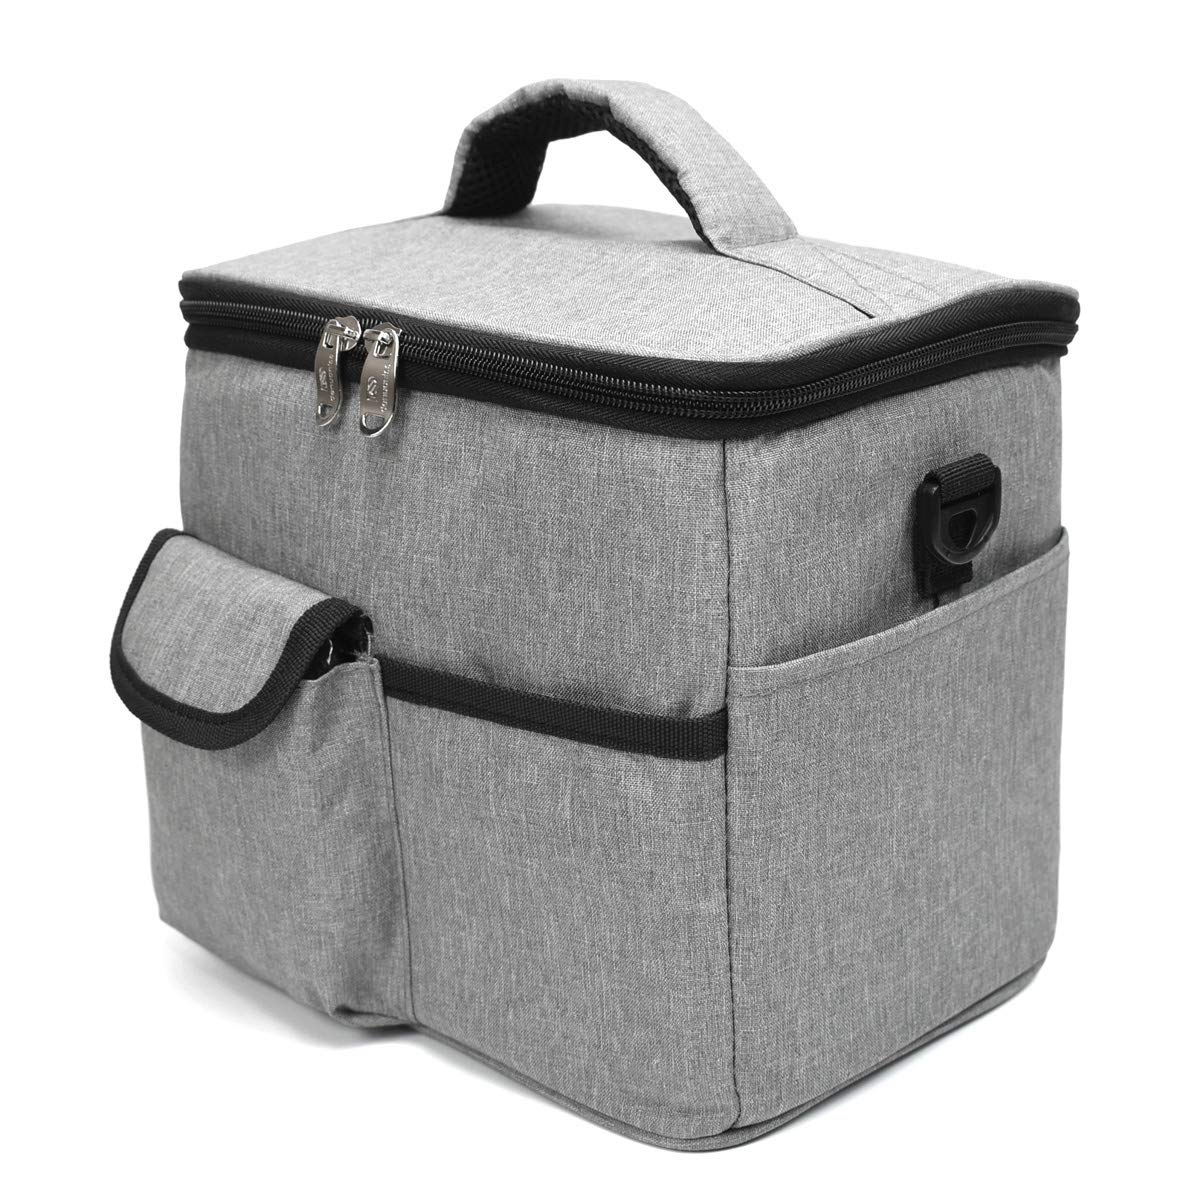 ZIIYAN Reusable Drink Carrier for Delivery and Food Delivery Bag, a Insulated Travel Coffee Carrier, Beverage Caddy Bag, Lunch Bag with Handle Shoulder Strap and Removable Dividers (Grey)